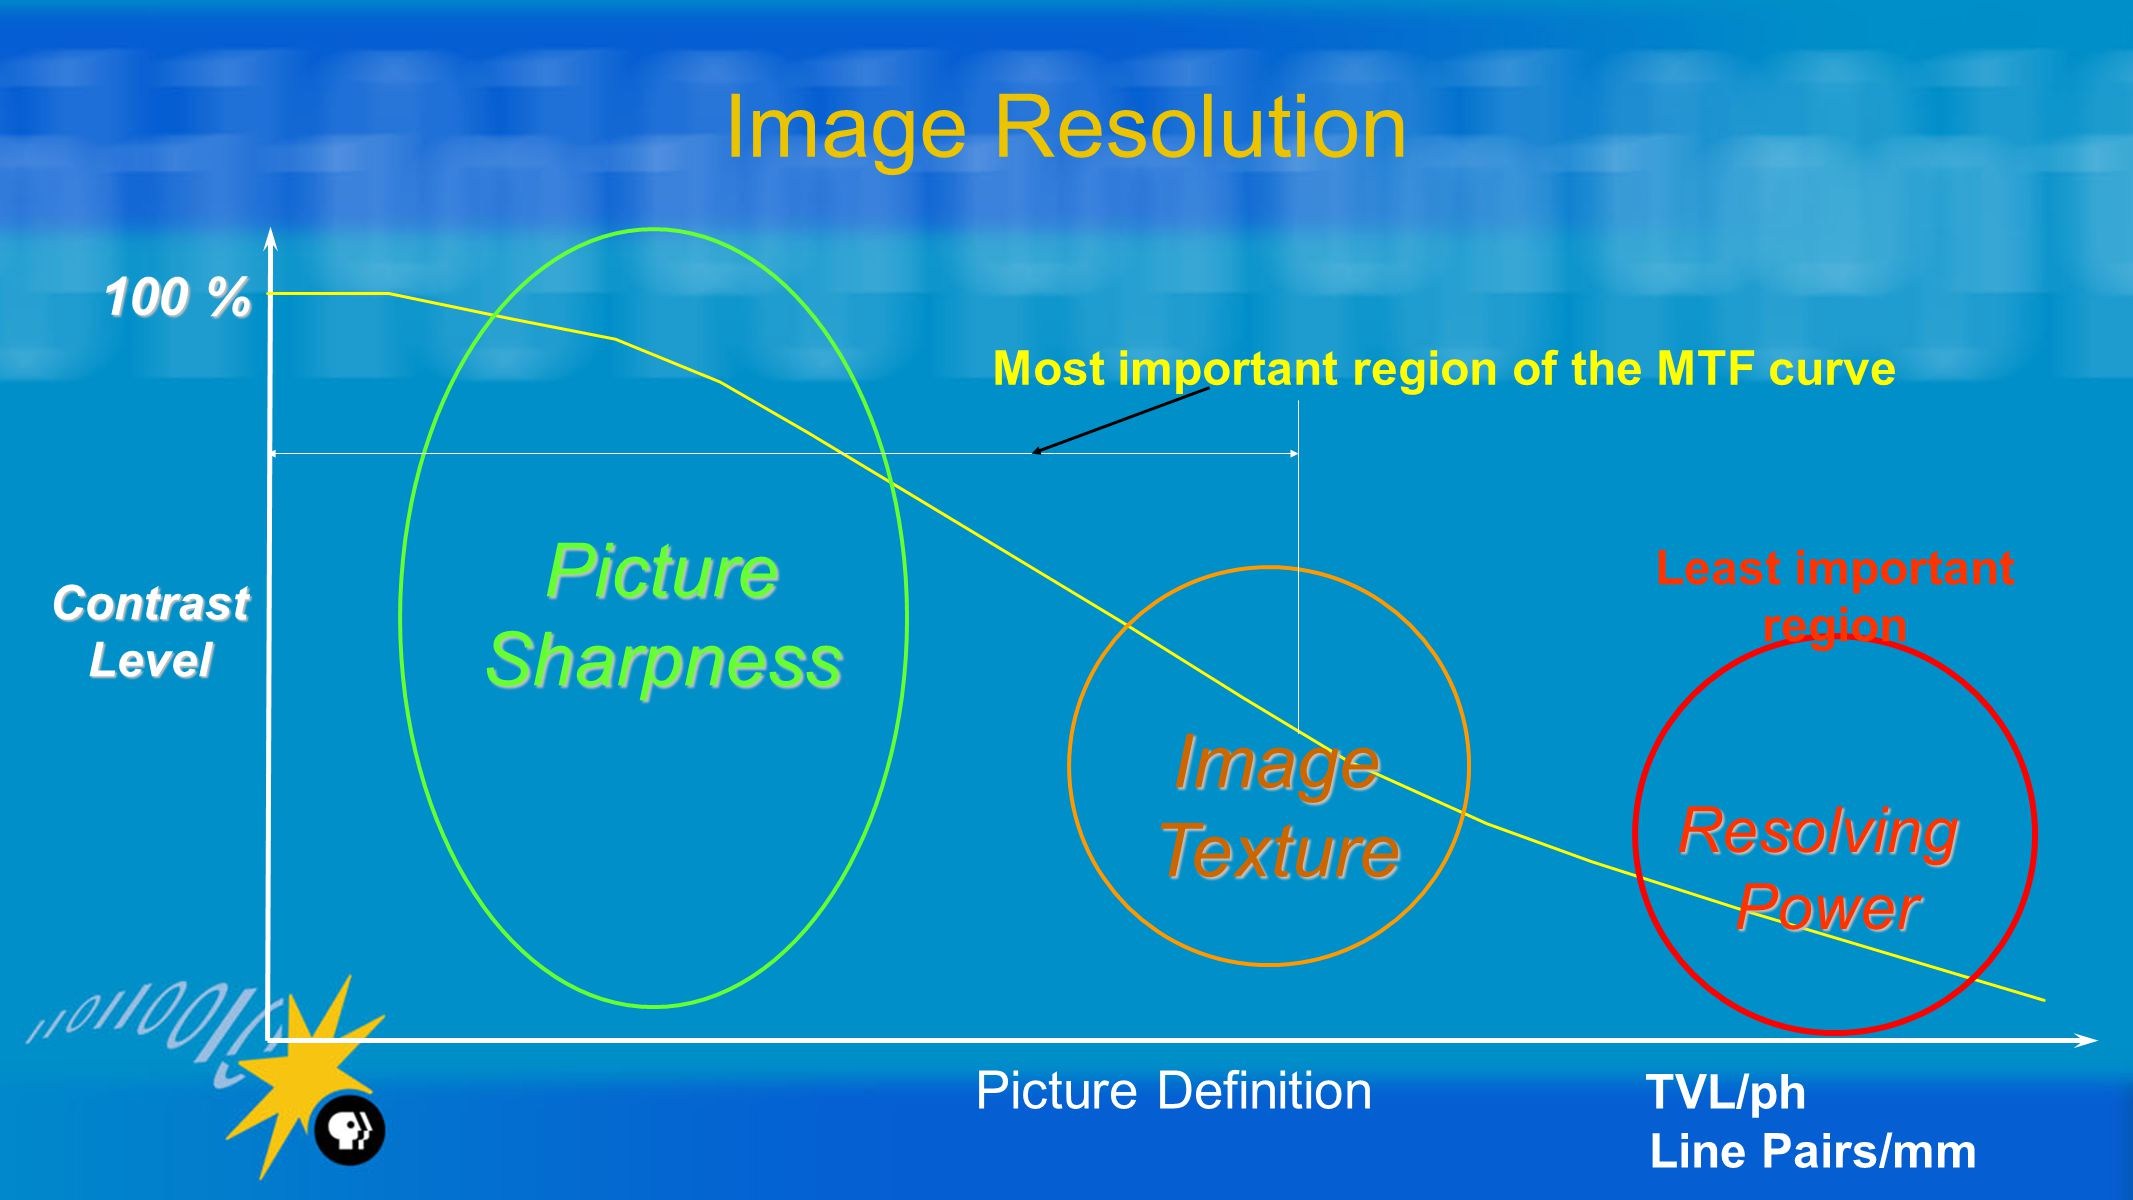 Image Resolution Picture Definition TVL/ph Line Pairs/mm ContrastLevel 100 % PictureSharpness ImageTexture ResolvingPower Most important region of the MTF curve Least important region